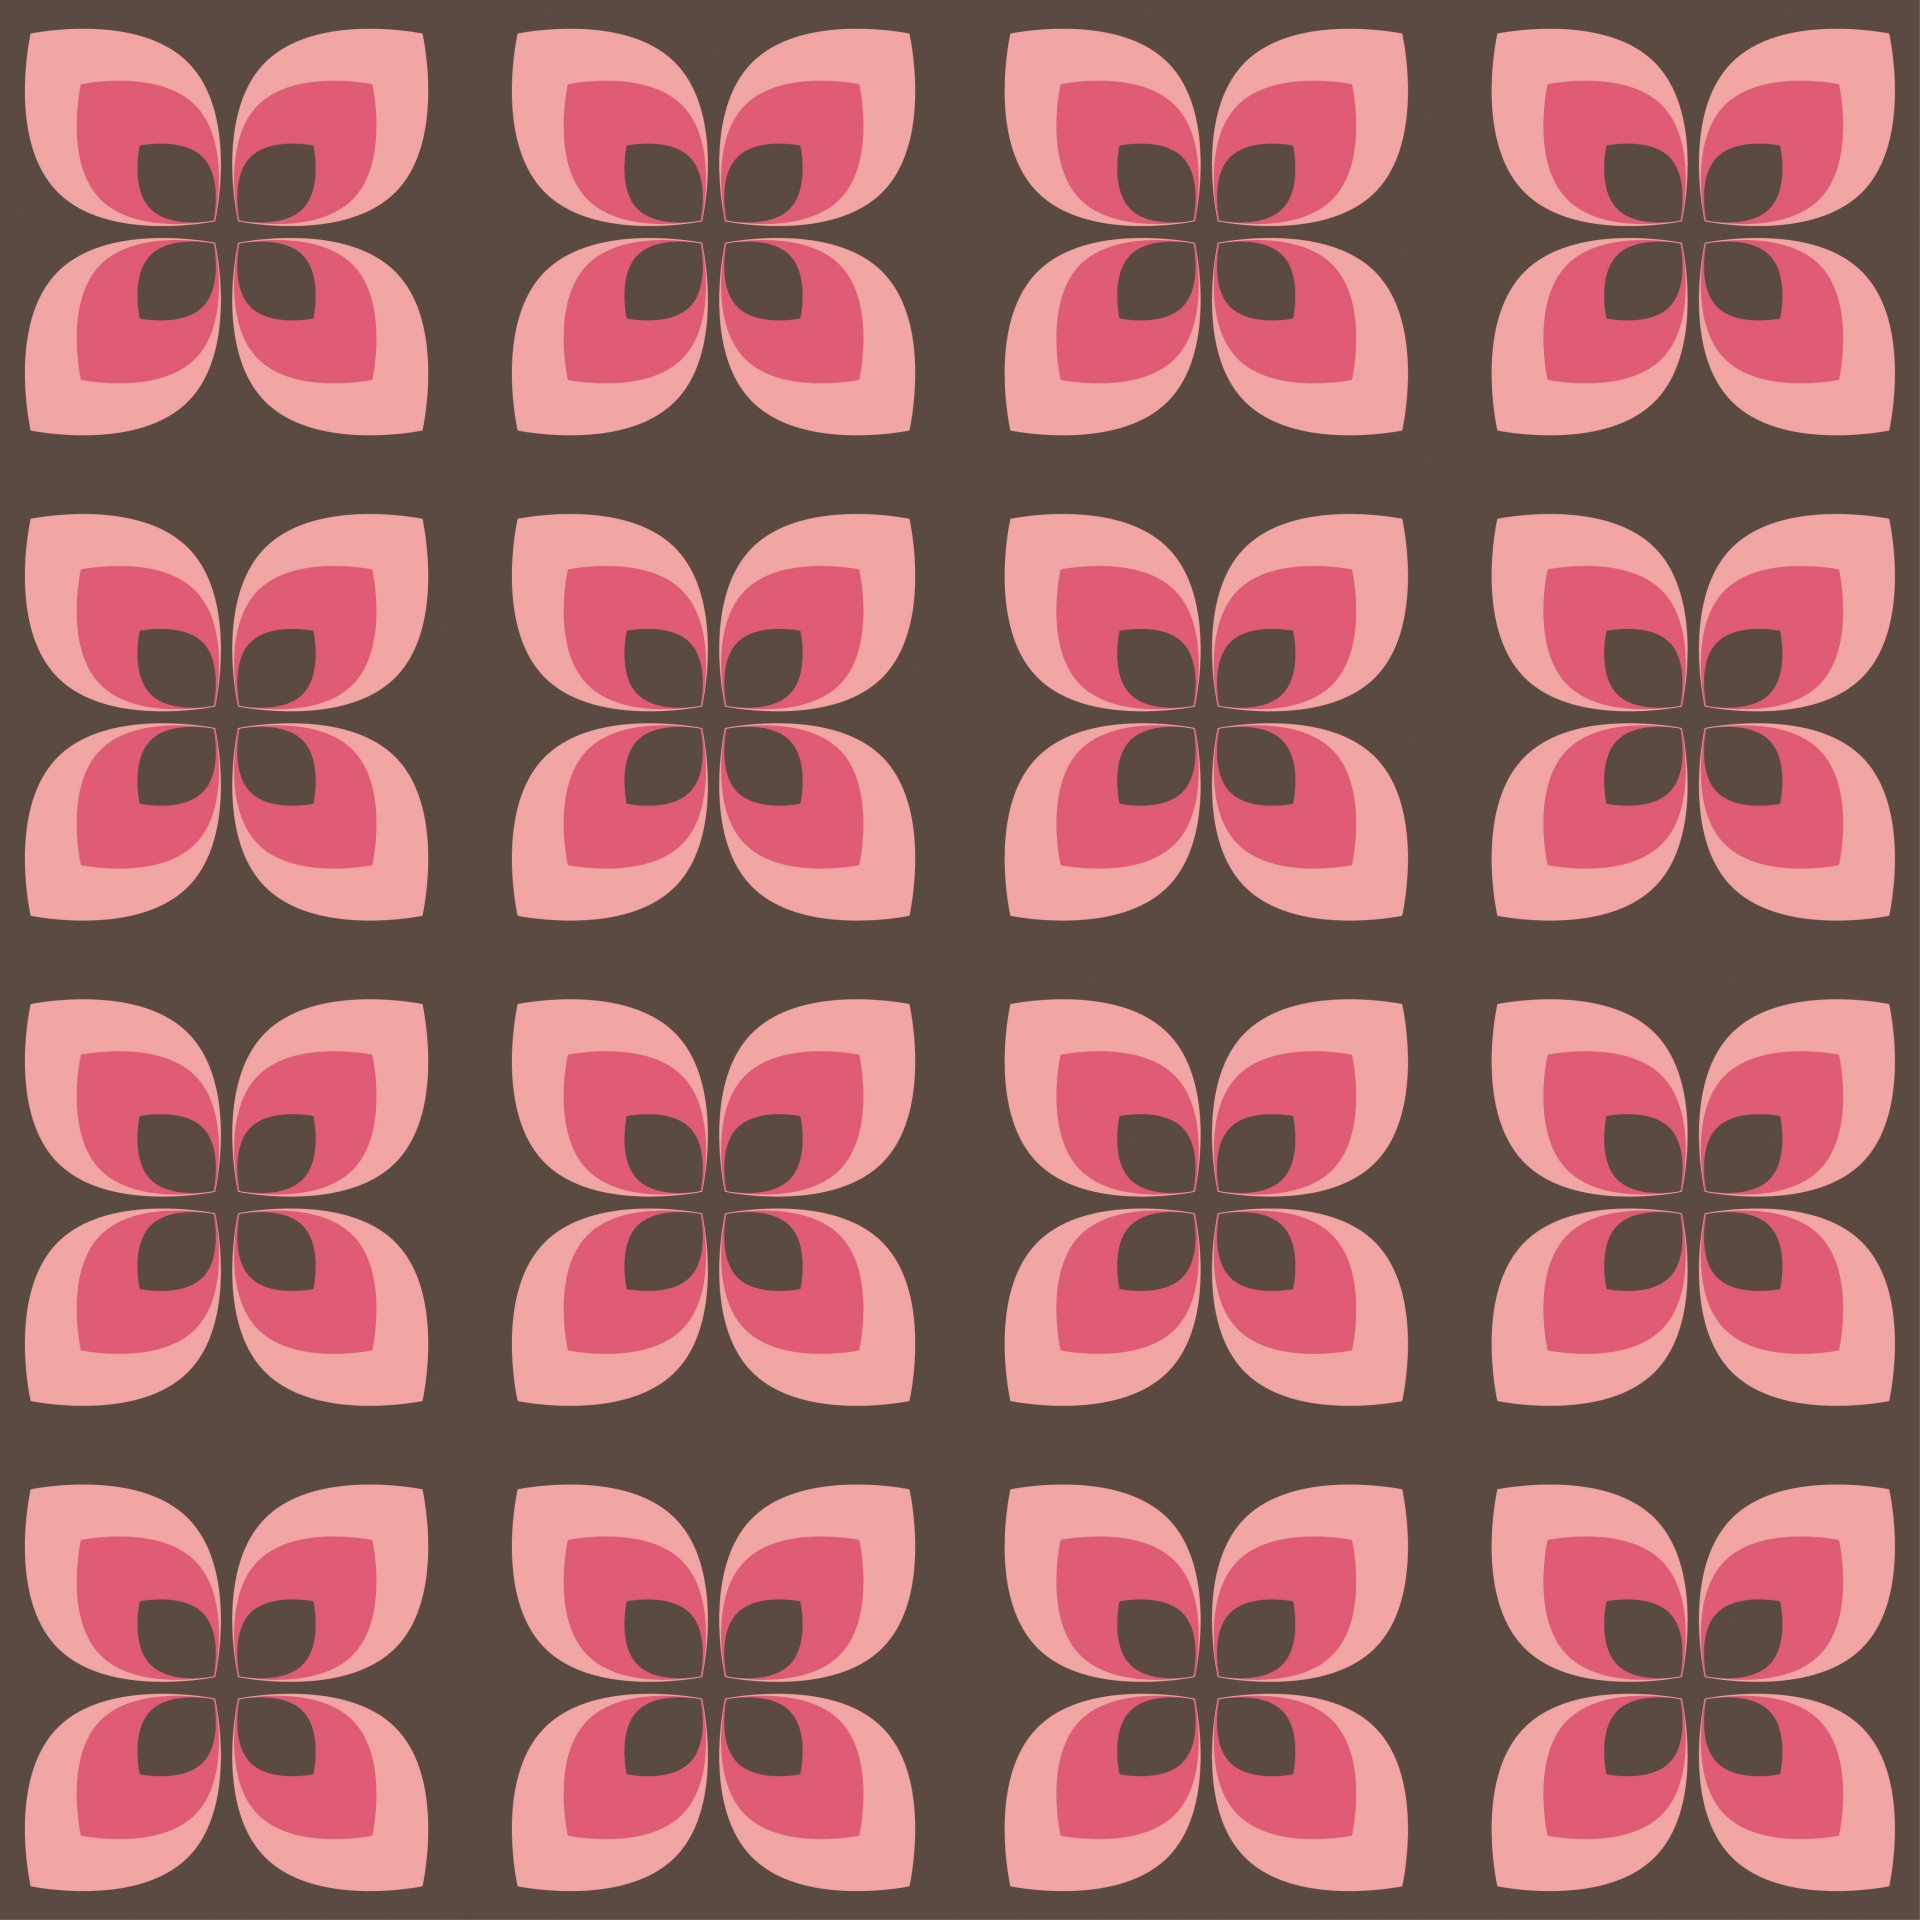 Floral Wallpaper Pattern Abstract 70s Free Image From Needpix Com